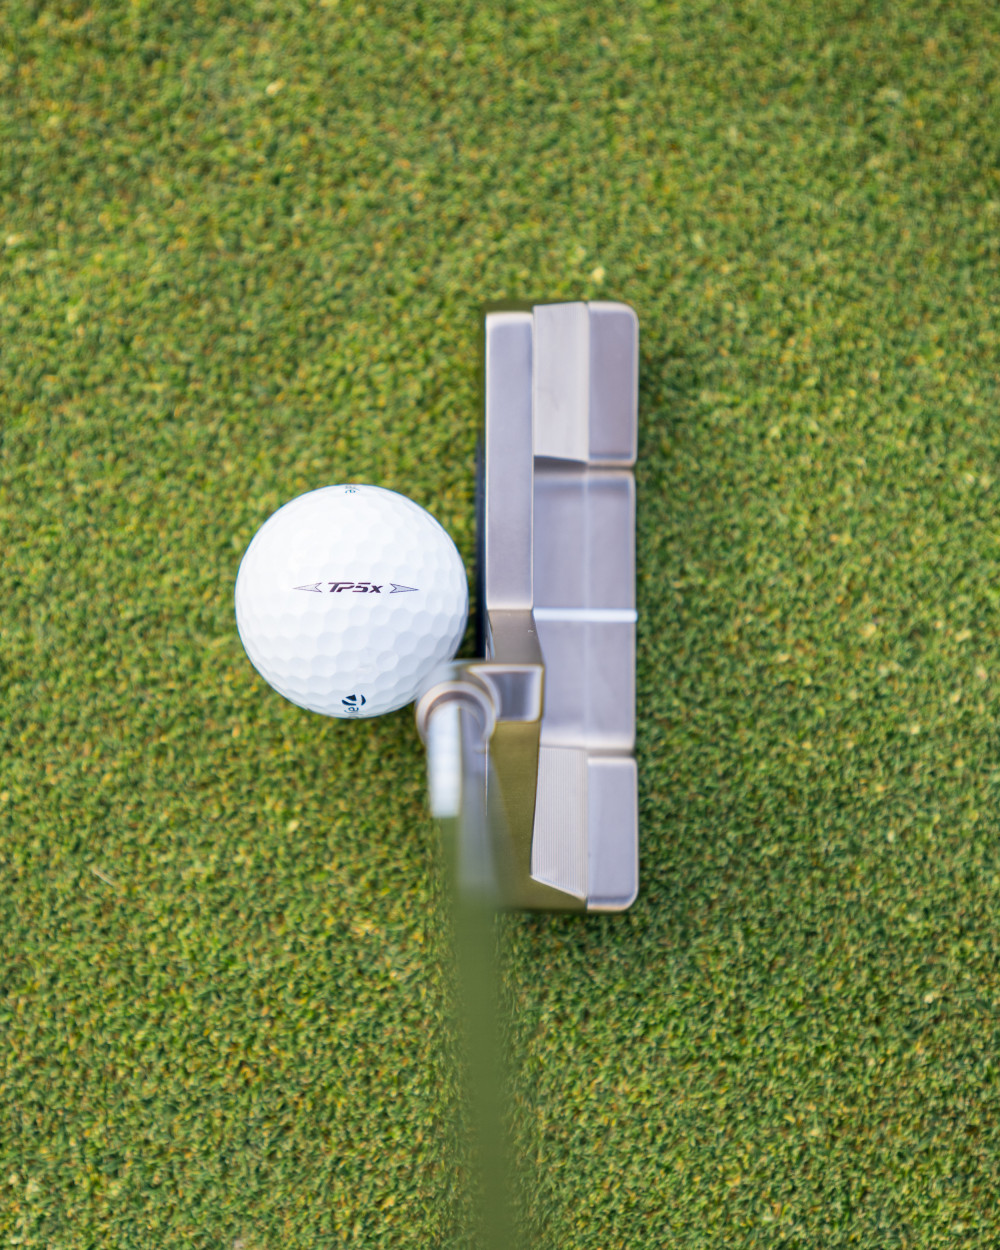 From address, the Truss putter resembles a classic blade design.